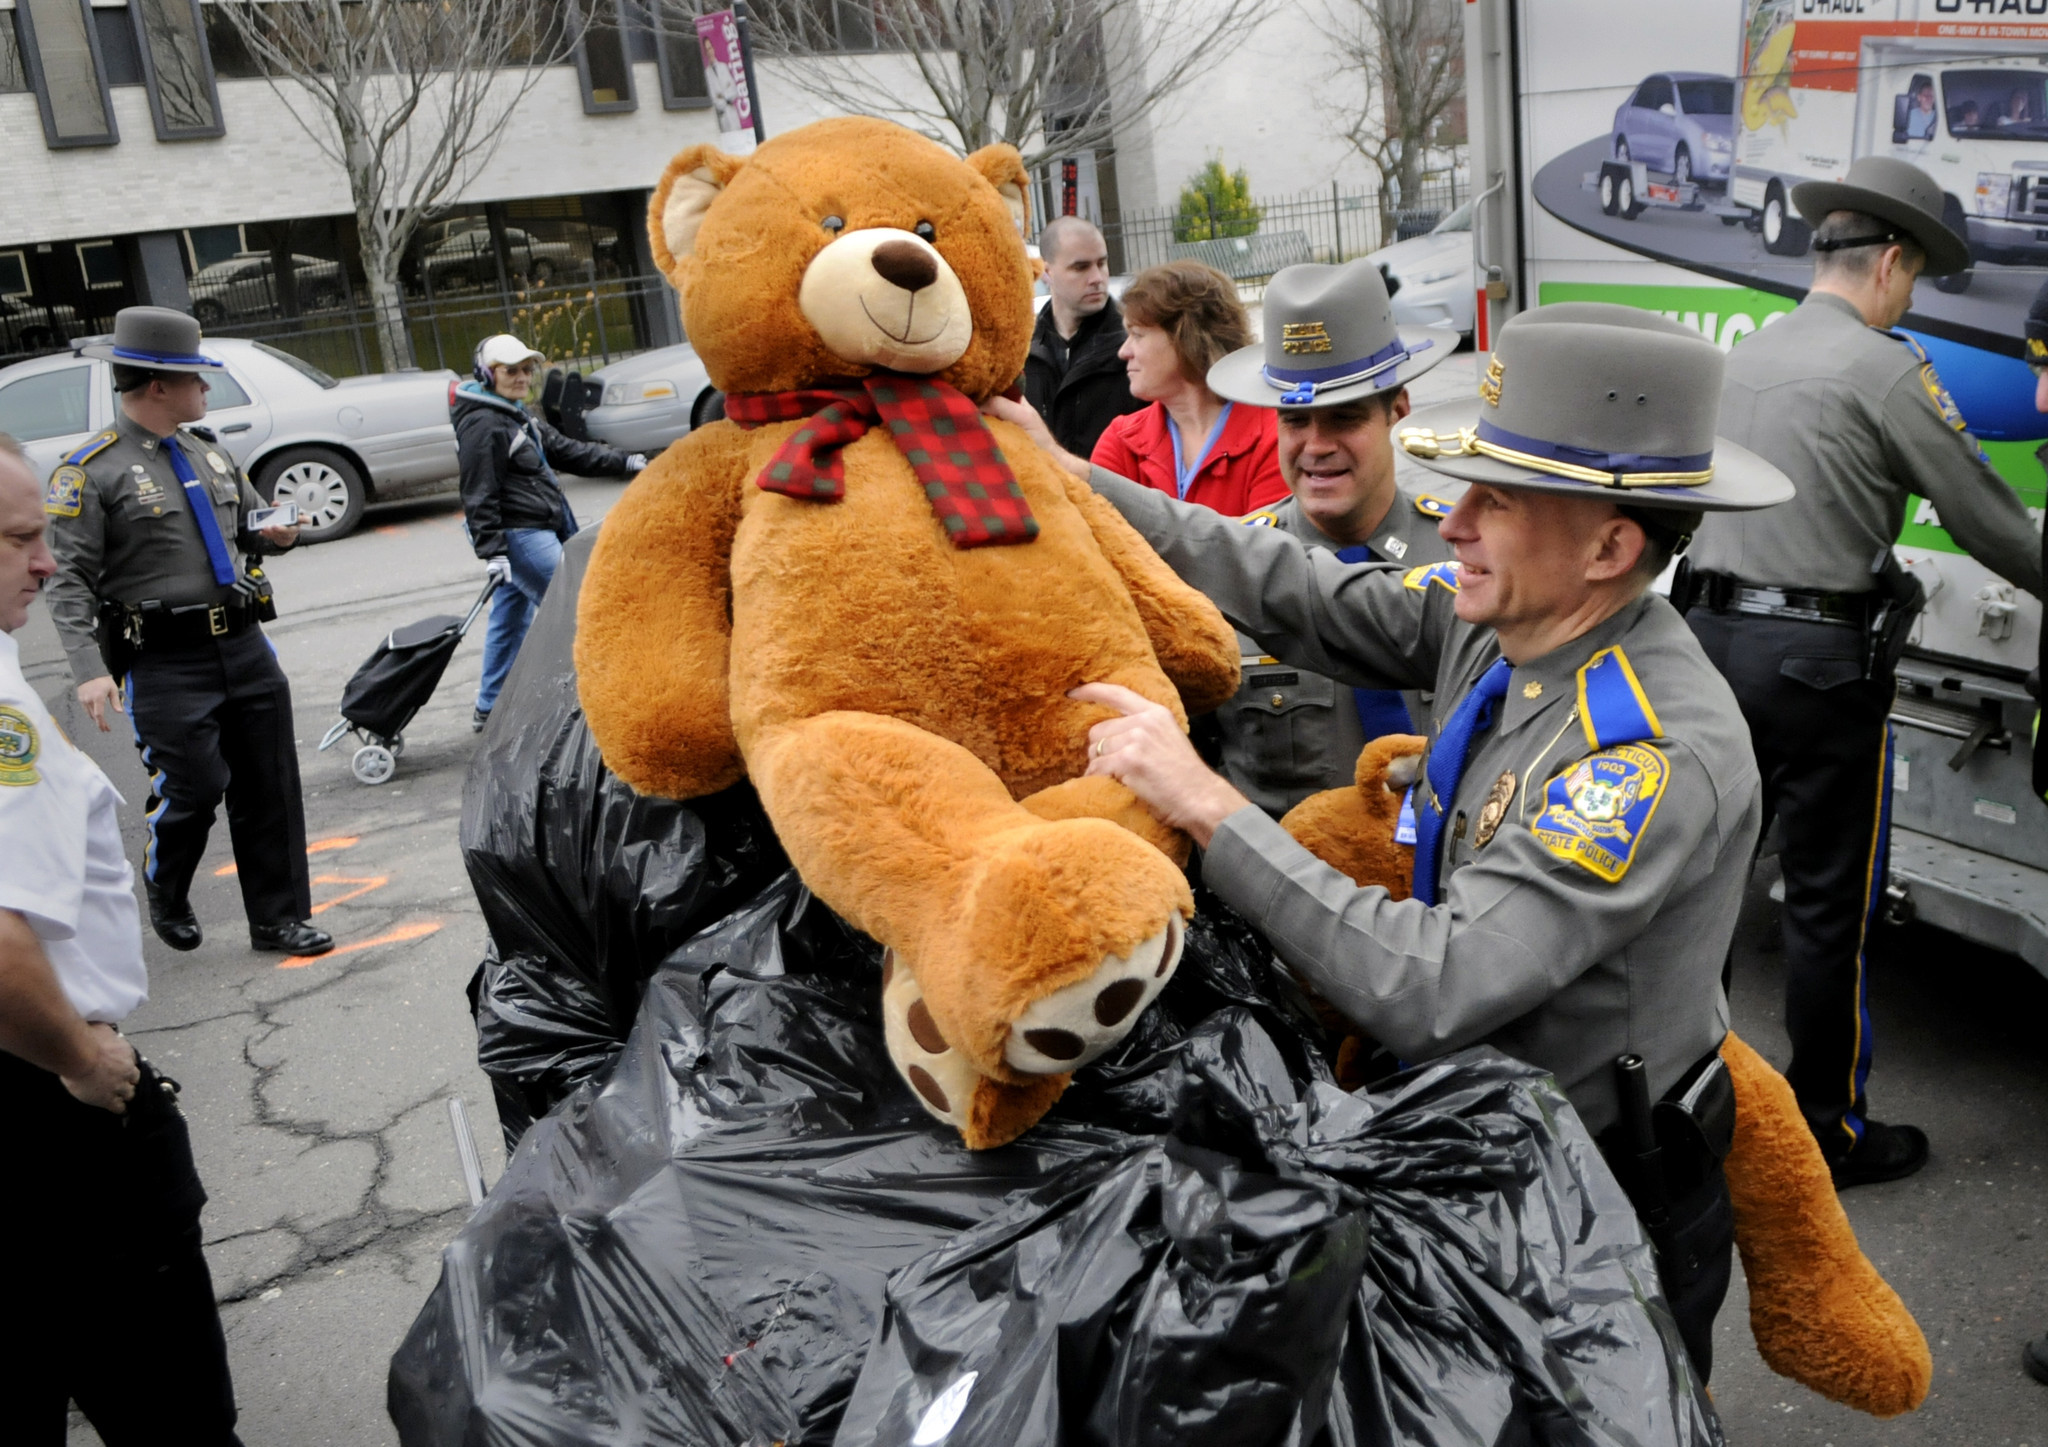 Connecticut Toy And Clothing Drives - Hartford Courant